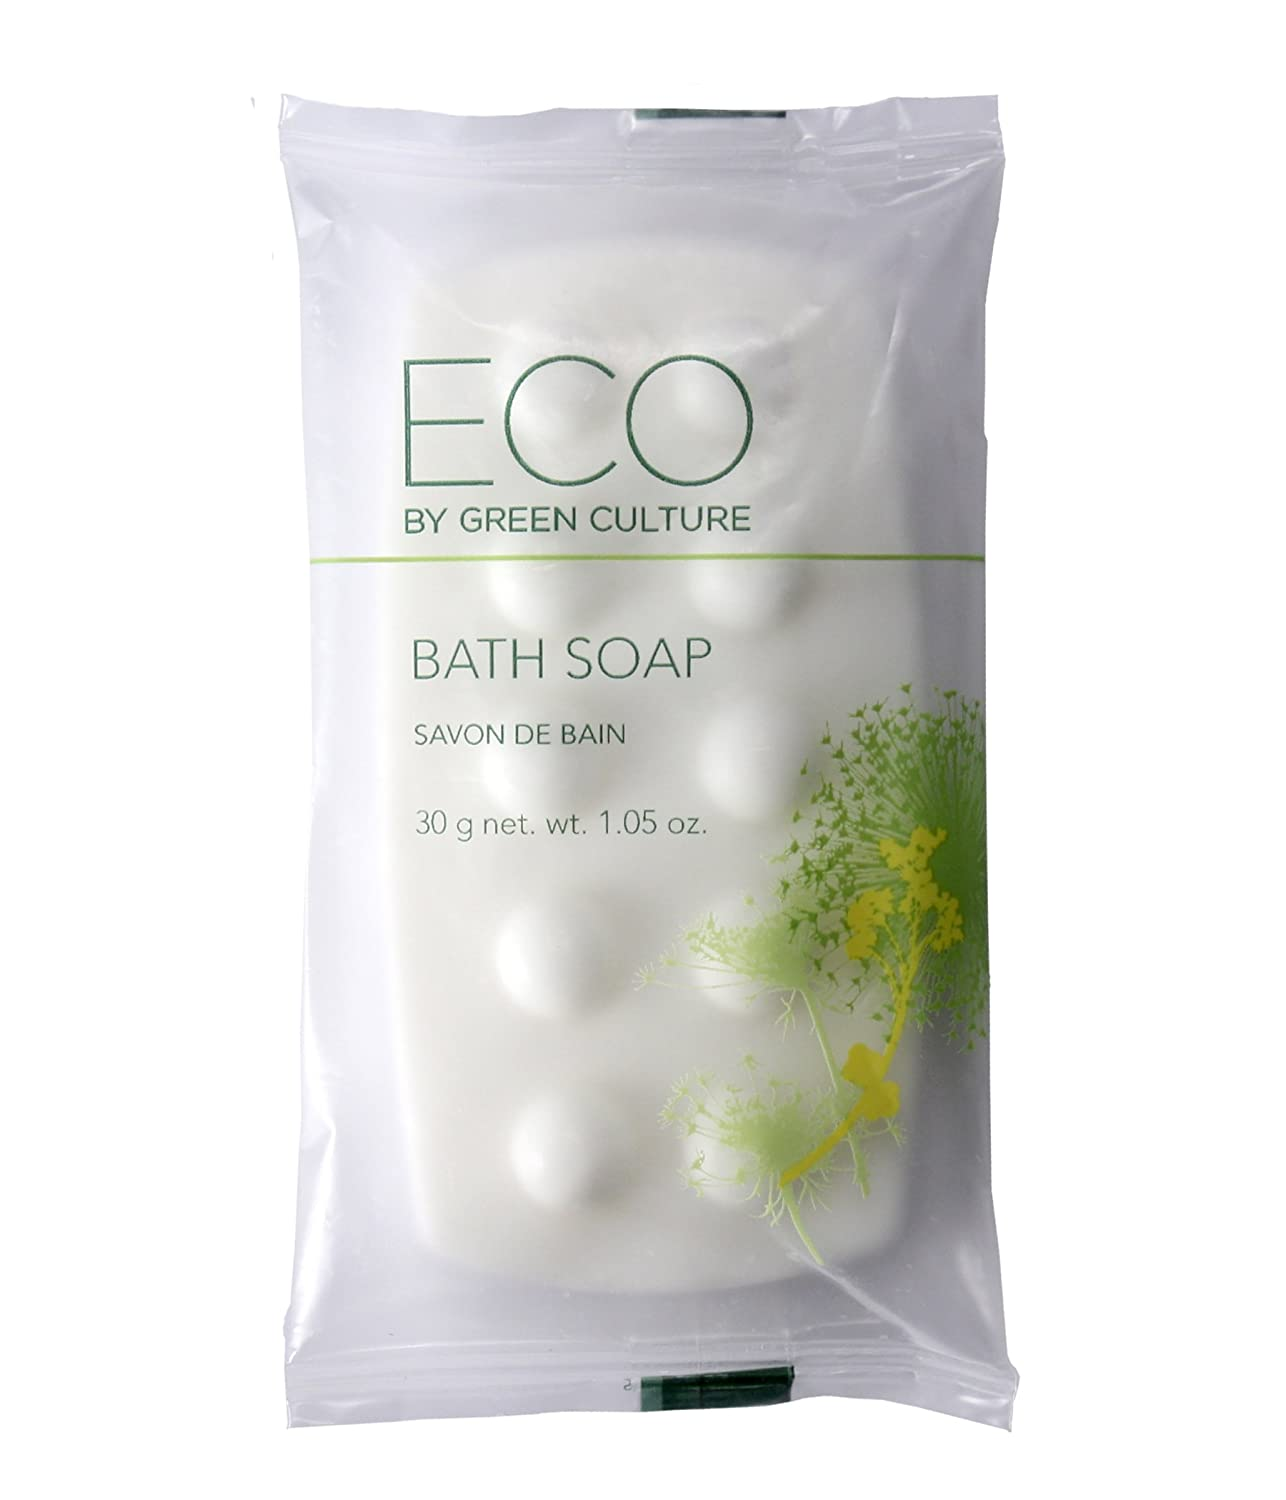 Eco by Green Culture Hotel Amenities Body Soap Bar, 1oz, 100 per case (100 Pack)